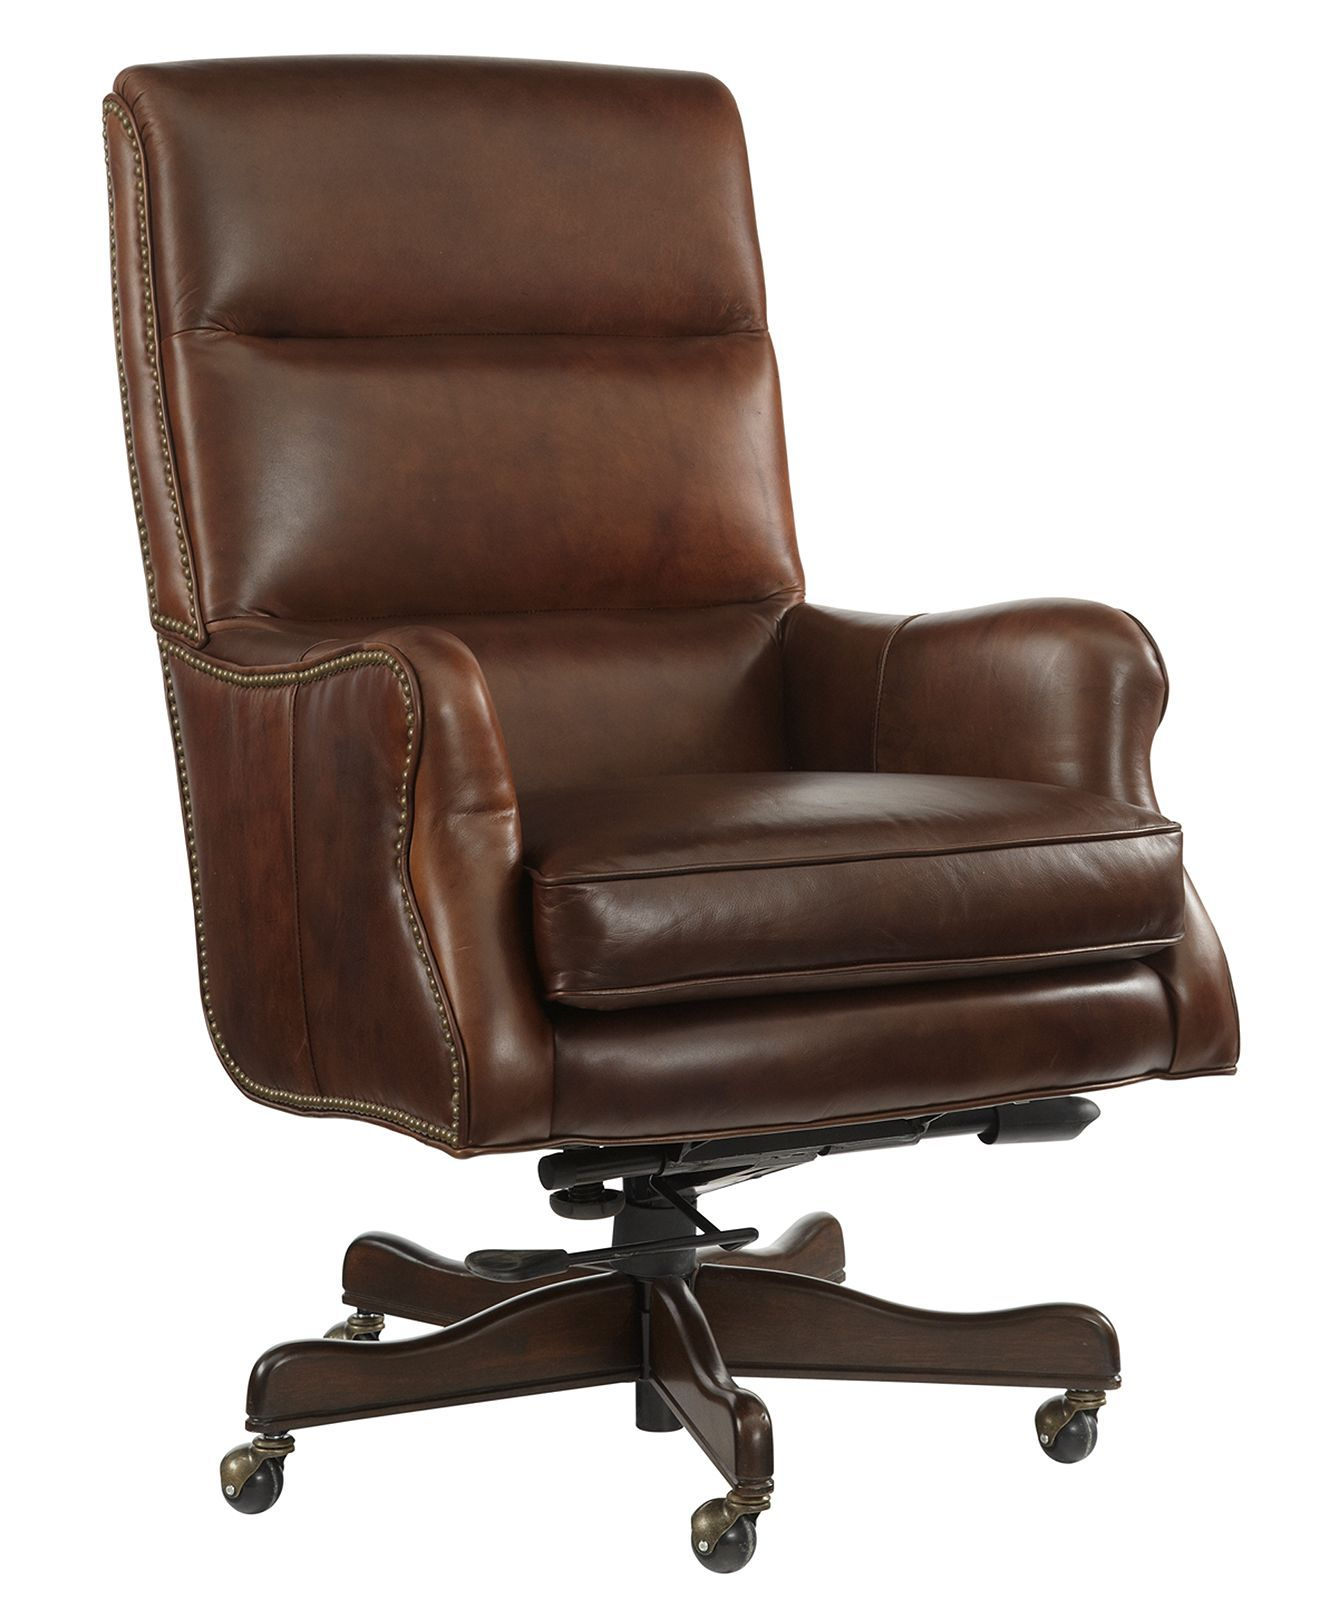 Buckley Leather Home Office Chair, Swivel Chairs